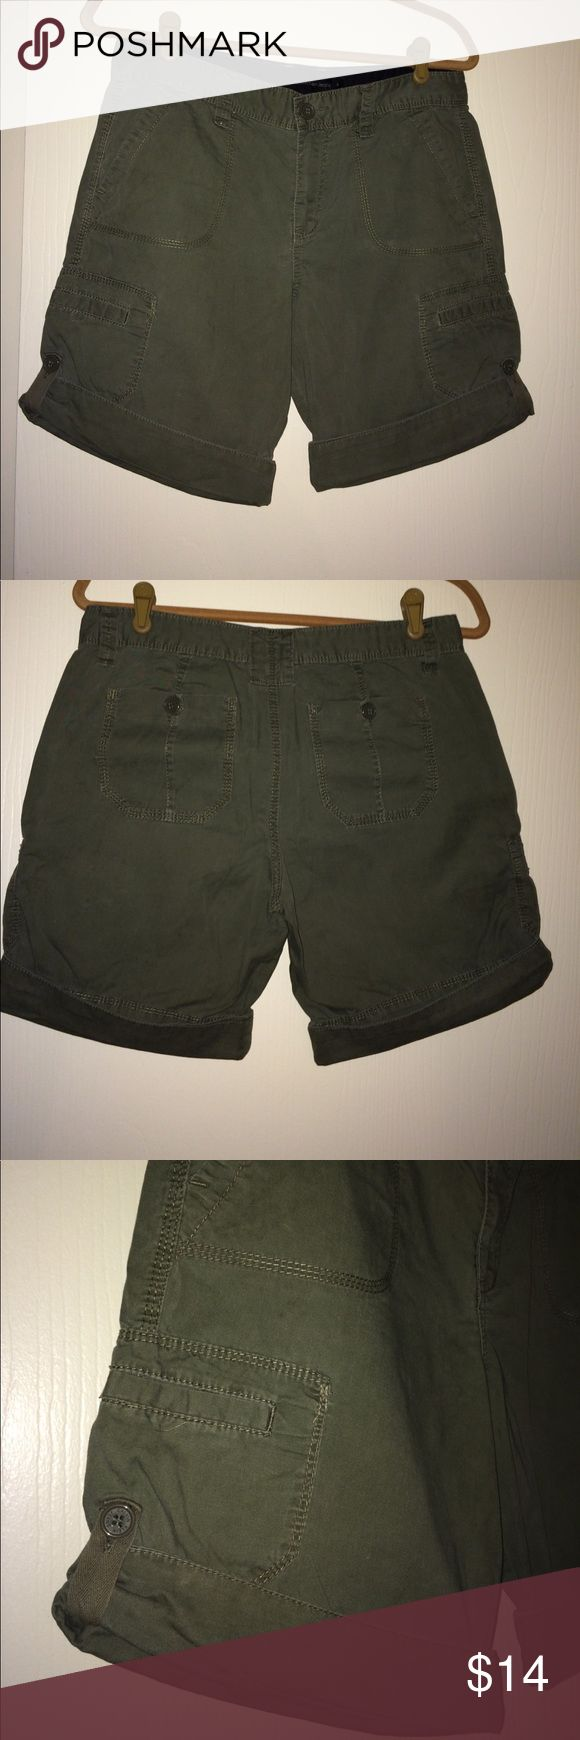 Calvin Klein Khaki Shorts Calvin Klein women's Khaki shorts. 6 pockets front, back, side. Button cuff to adjust length of shorts.  Size 8 ---- Color: Olive. Worn a couple of times, in great condition.  No pets, No Smoking, clean home. Calvin Klein Shorts